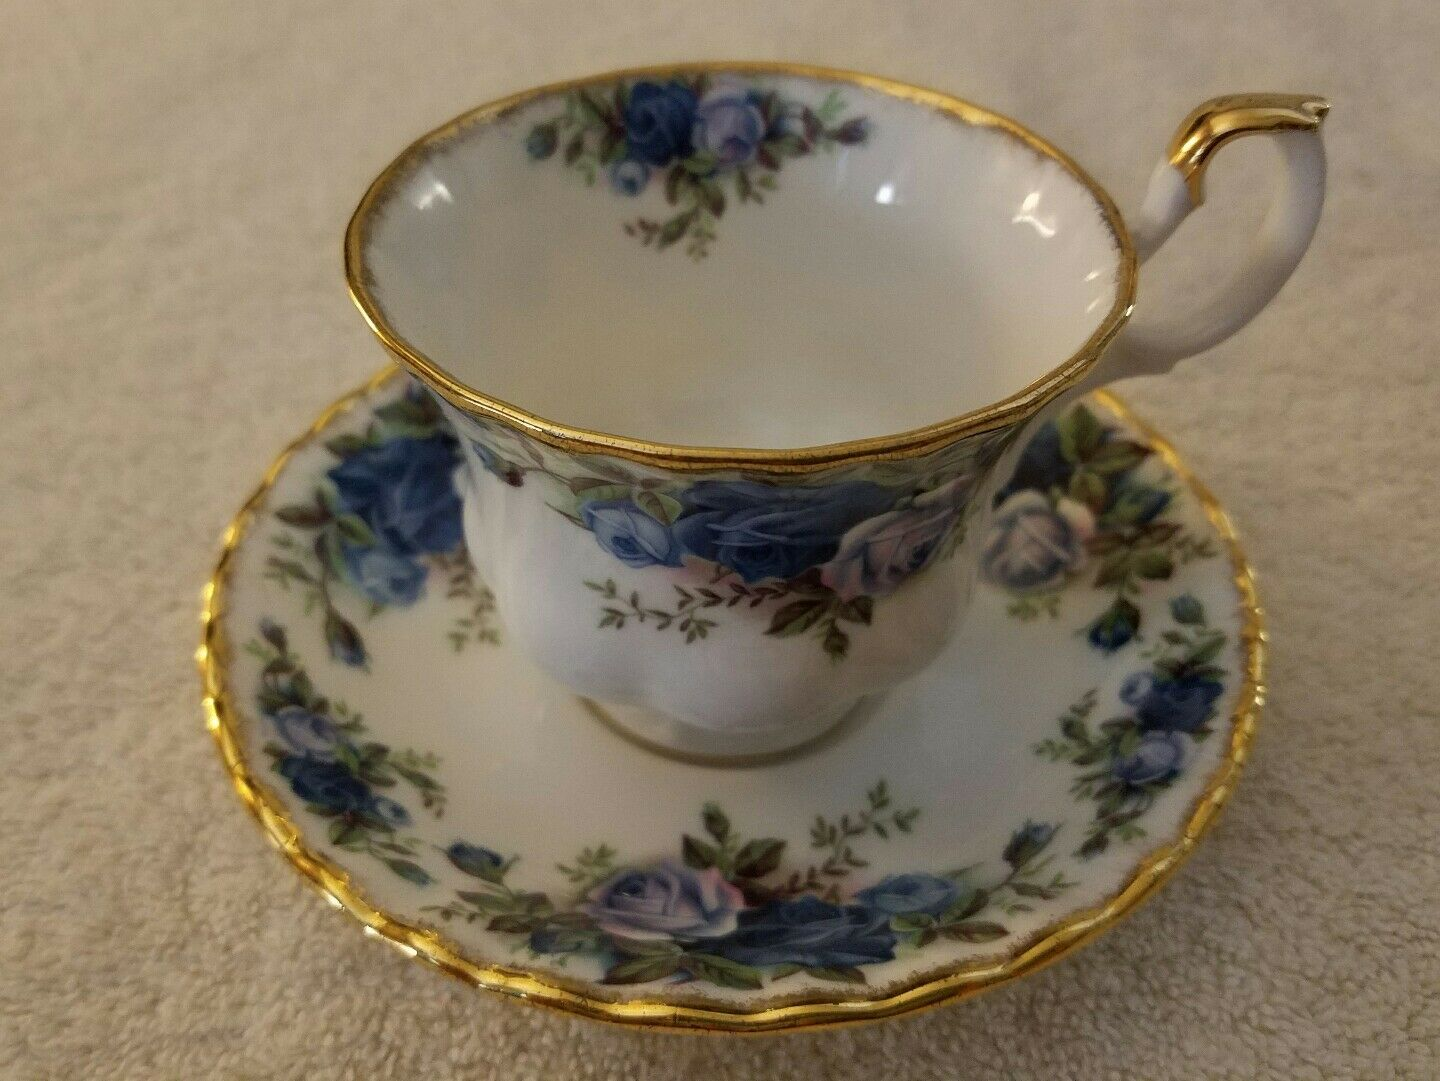 vintage royal albert moonlight rose bone china england tea cup and saucer picclick uk. Black Bedroom Furniture Sets. Home Design Ideas